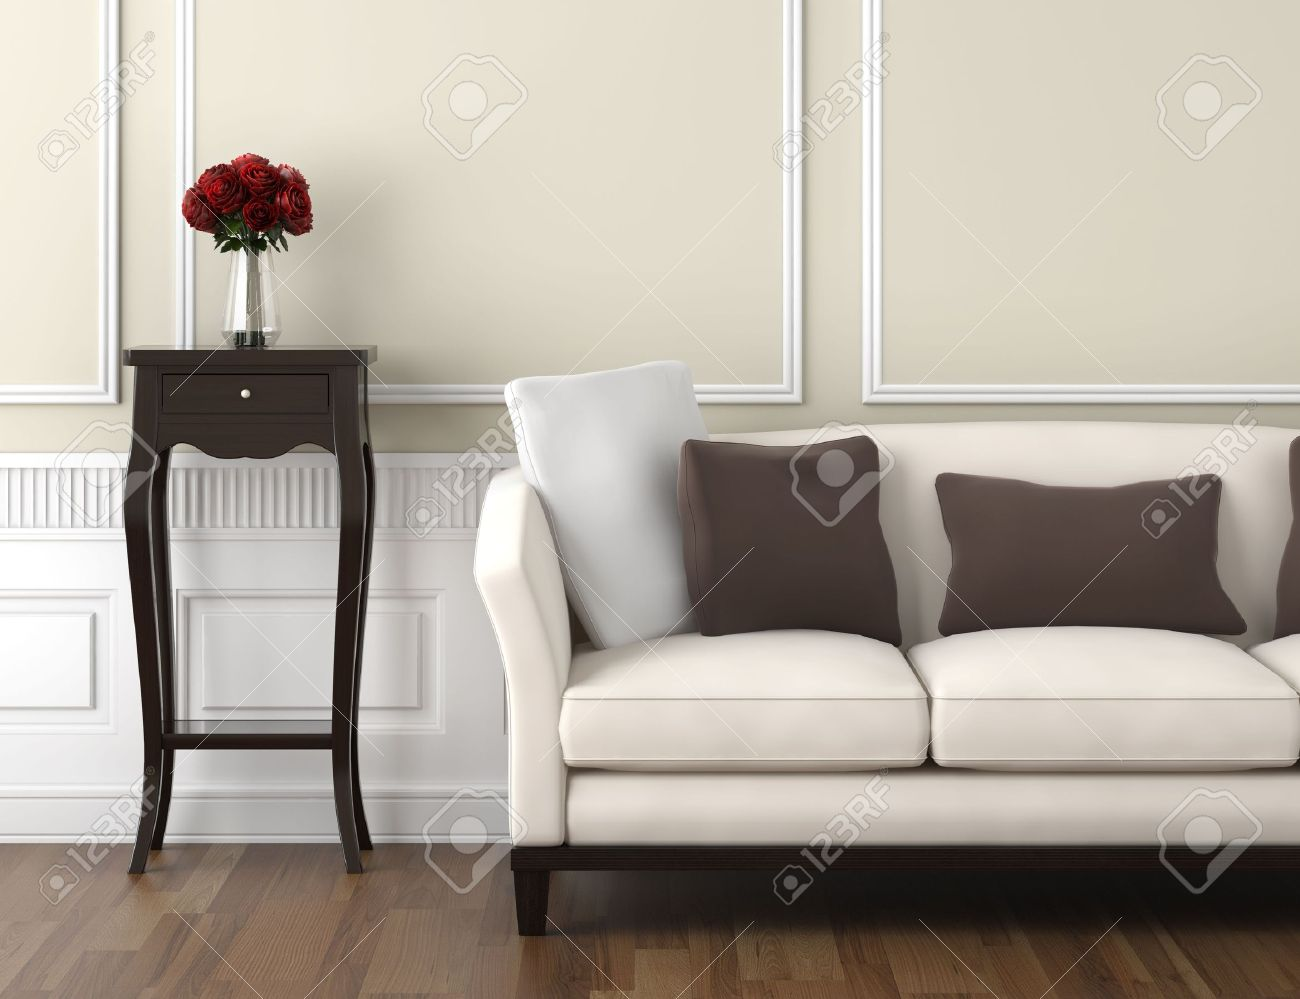 Interior Design Of Classic Room In Beige And White Colors With Couch Table